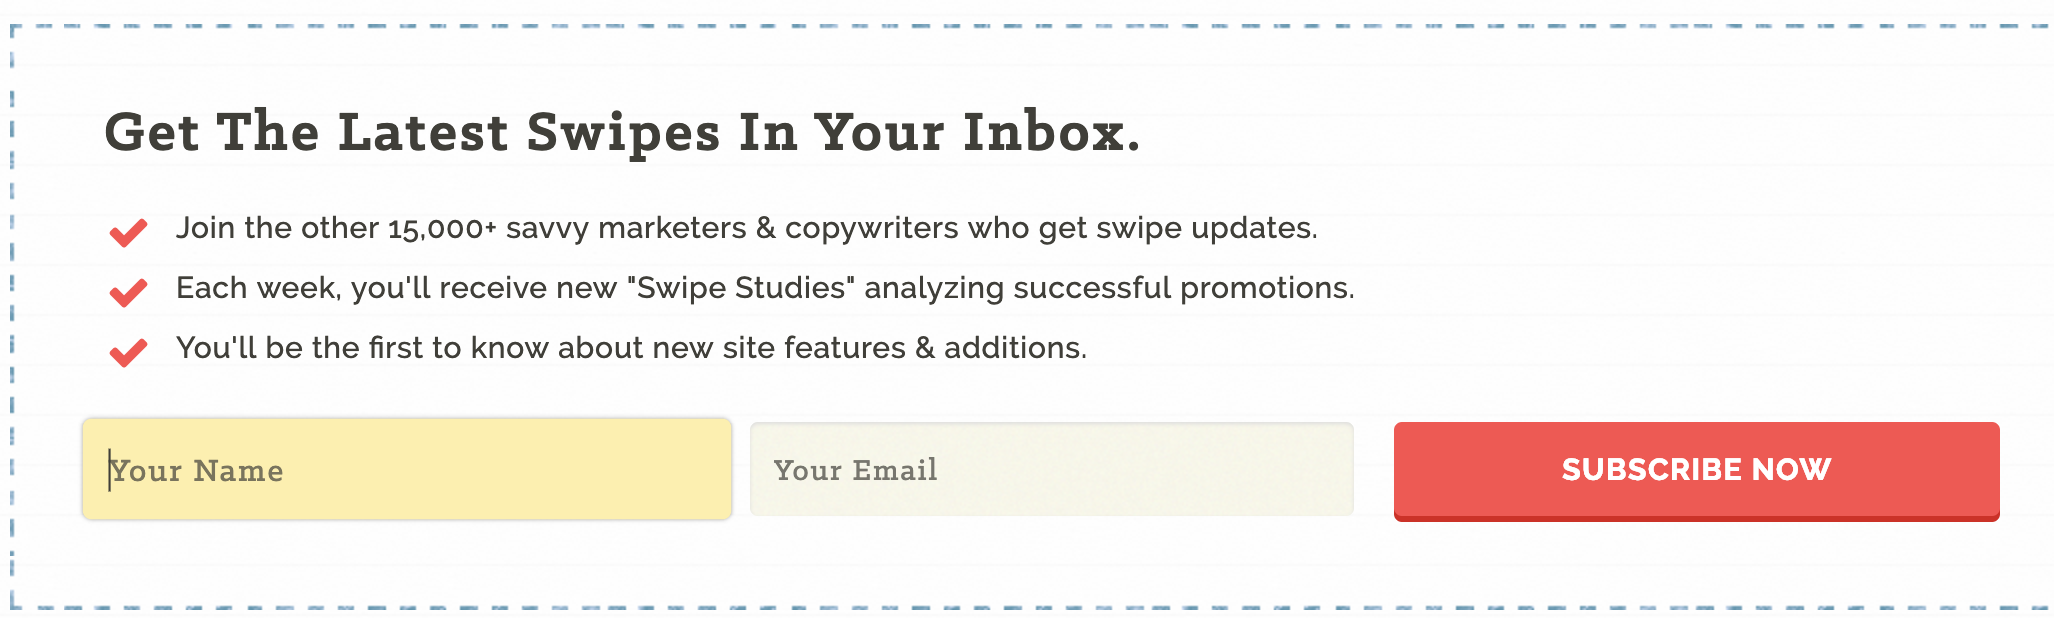 25 Lead Magnet Ideas to Help You Build Your Email List Faster